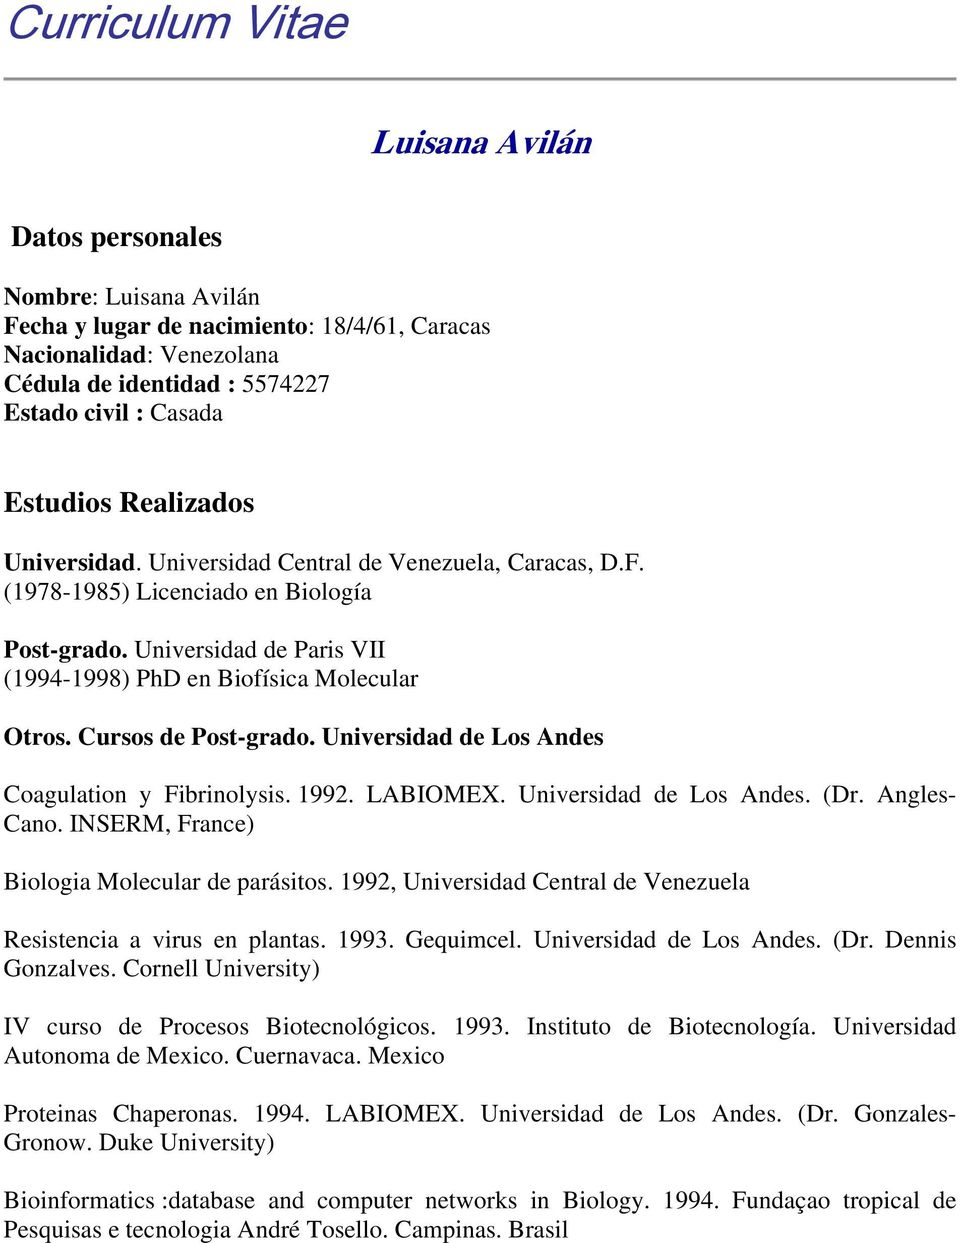 Cursos de Post-grado. Universidad de Los Andes Coagulation y Fibrinolysis. 1992. LABIOMEX. Universidad de Los Andes. (Dr. Angles- Cano. INSERM, France) Biologia Molecular de parásitos.